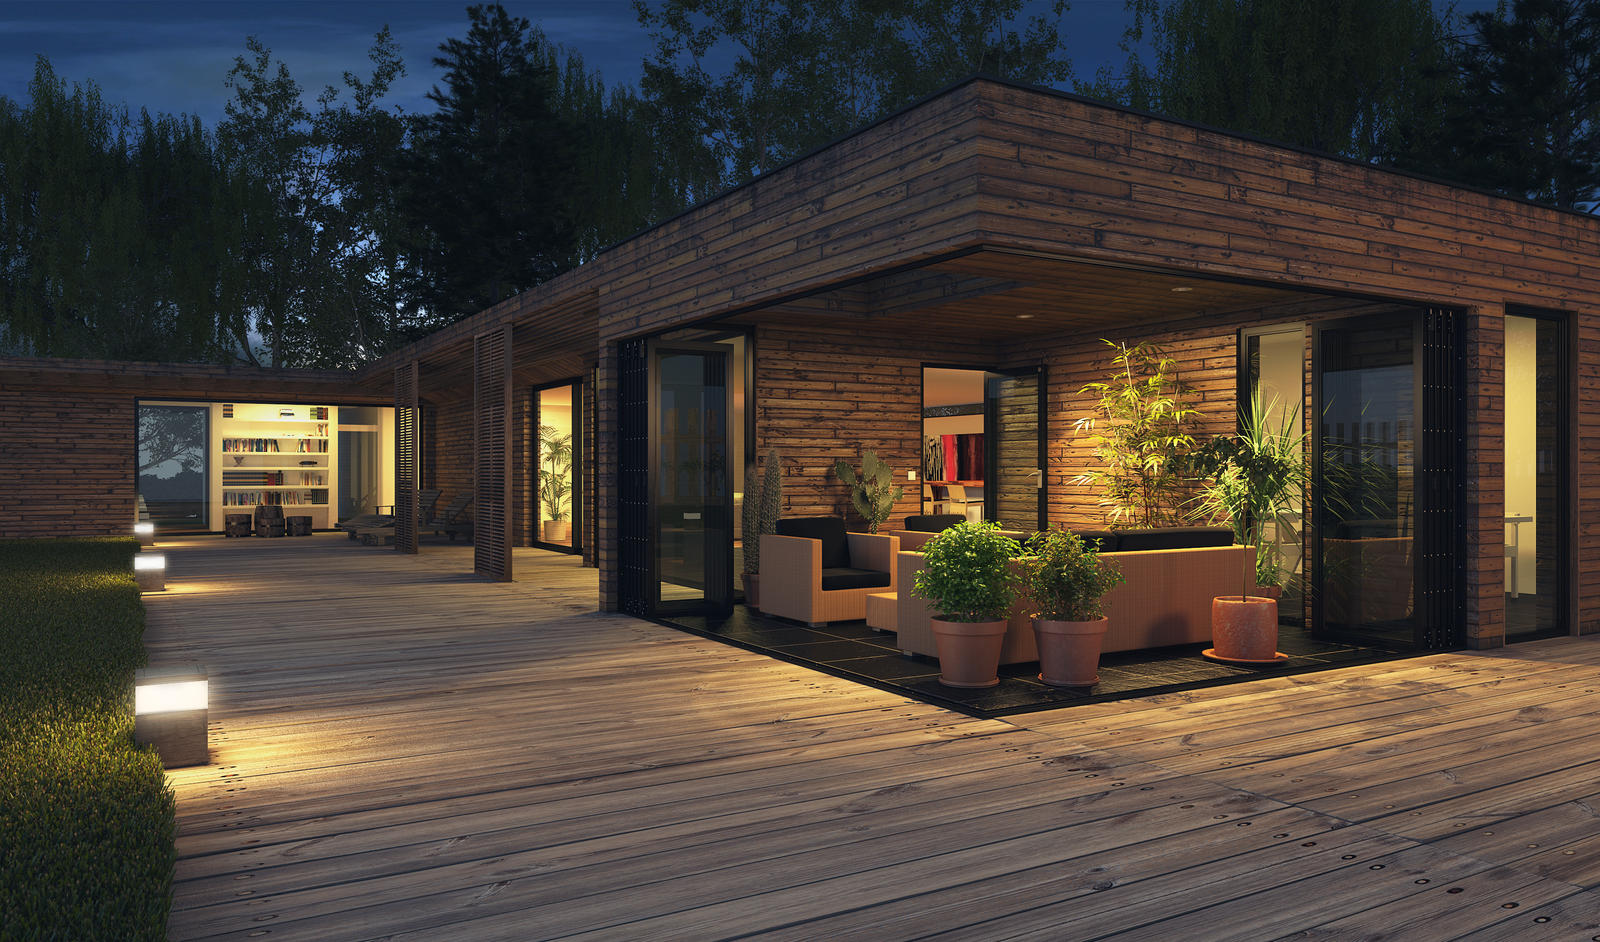 Modern house night by joaonetoartcg on deviantart for Modern house at night